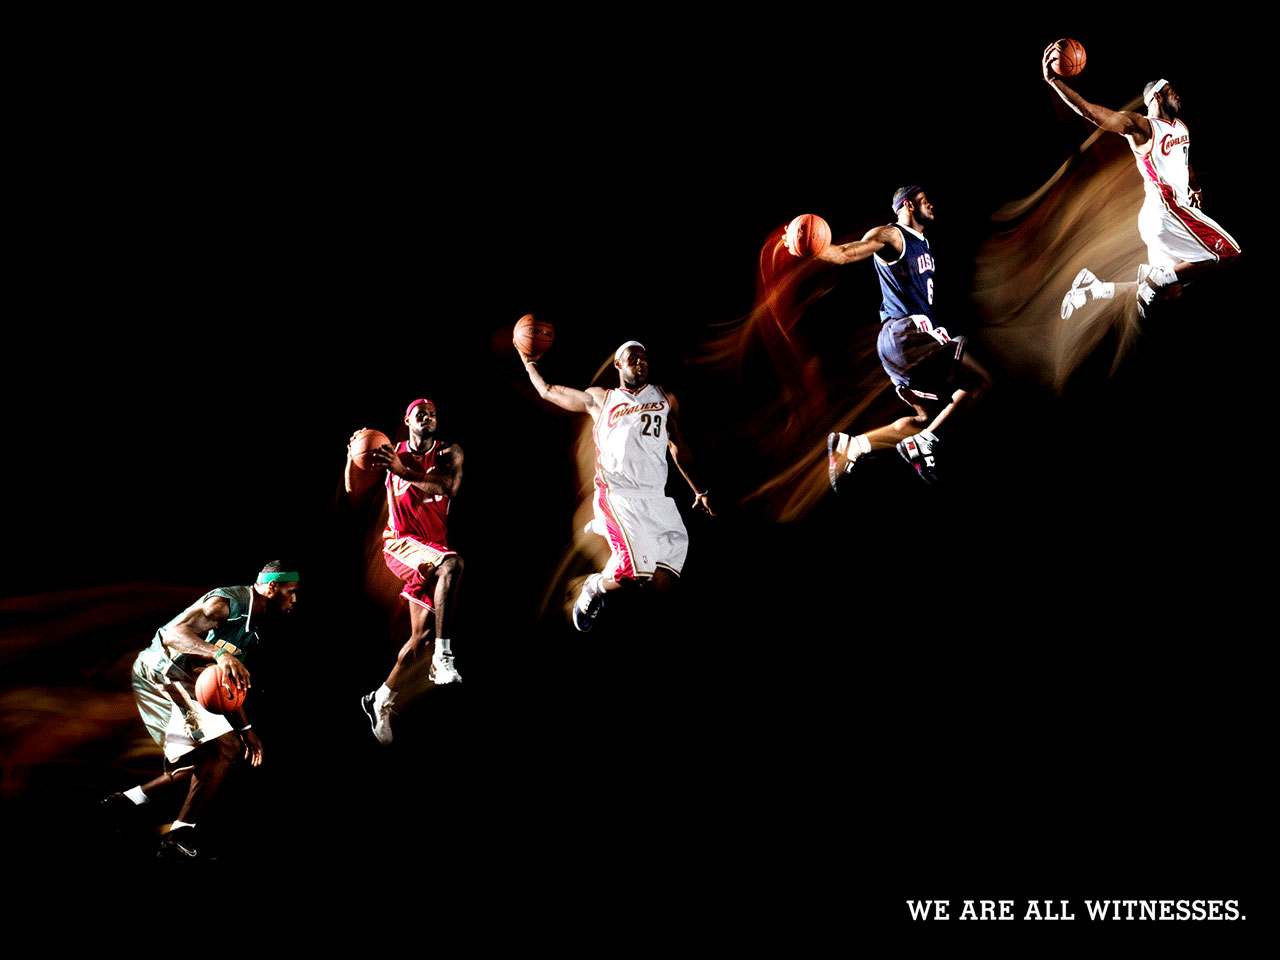 b6ec184ccba 1280x960px Lebron James Nike Wallpapers - WallpaperSafari